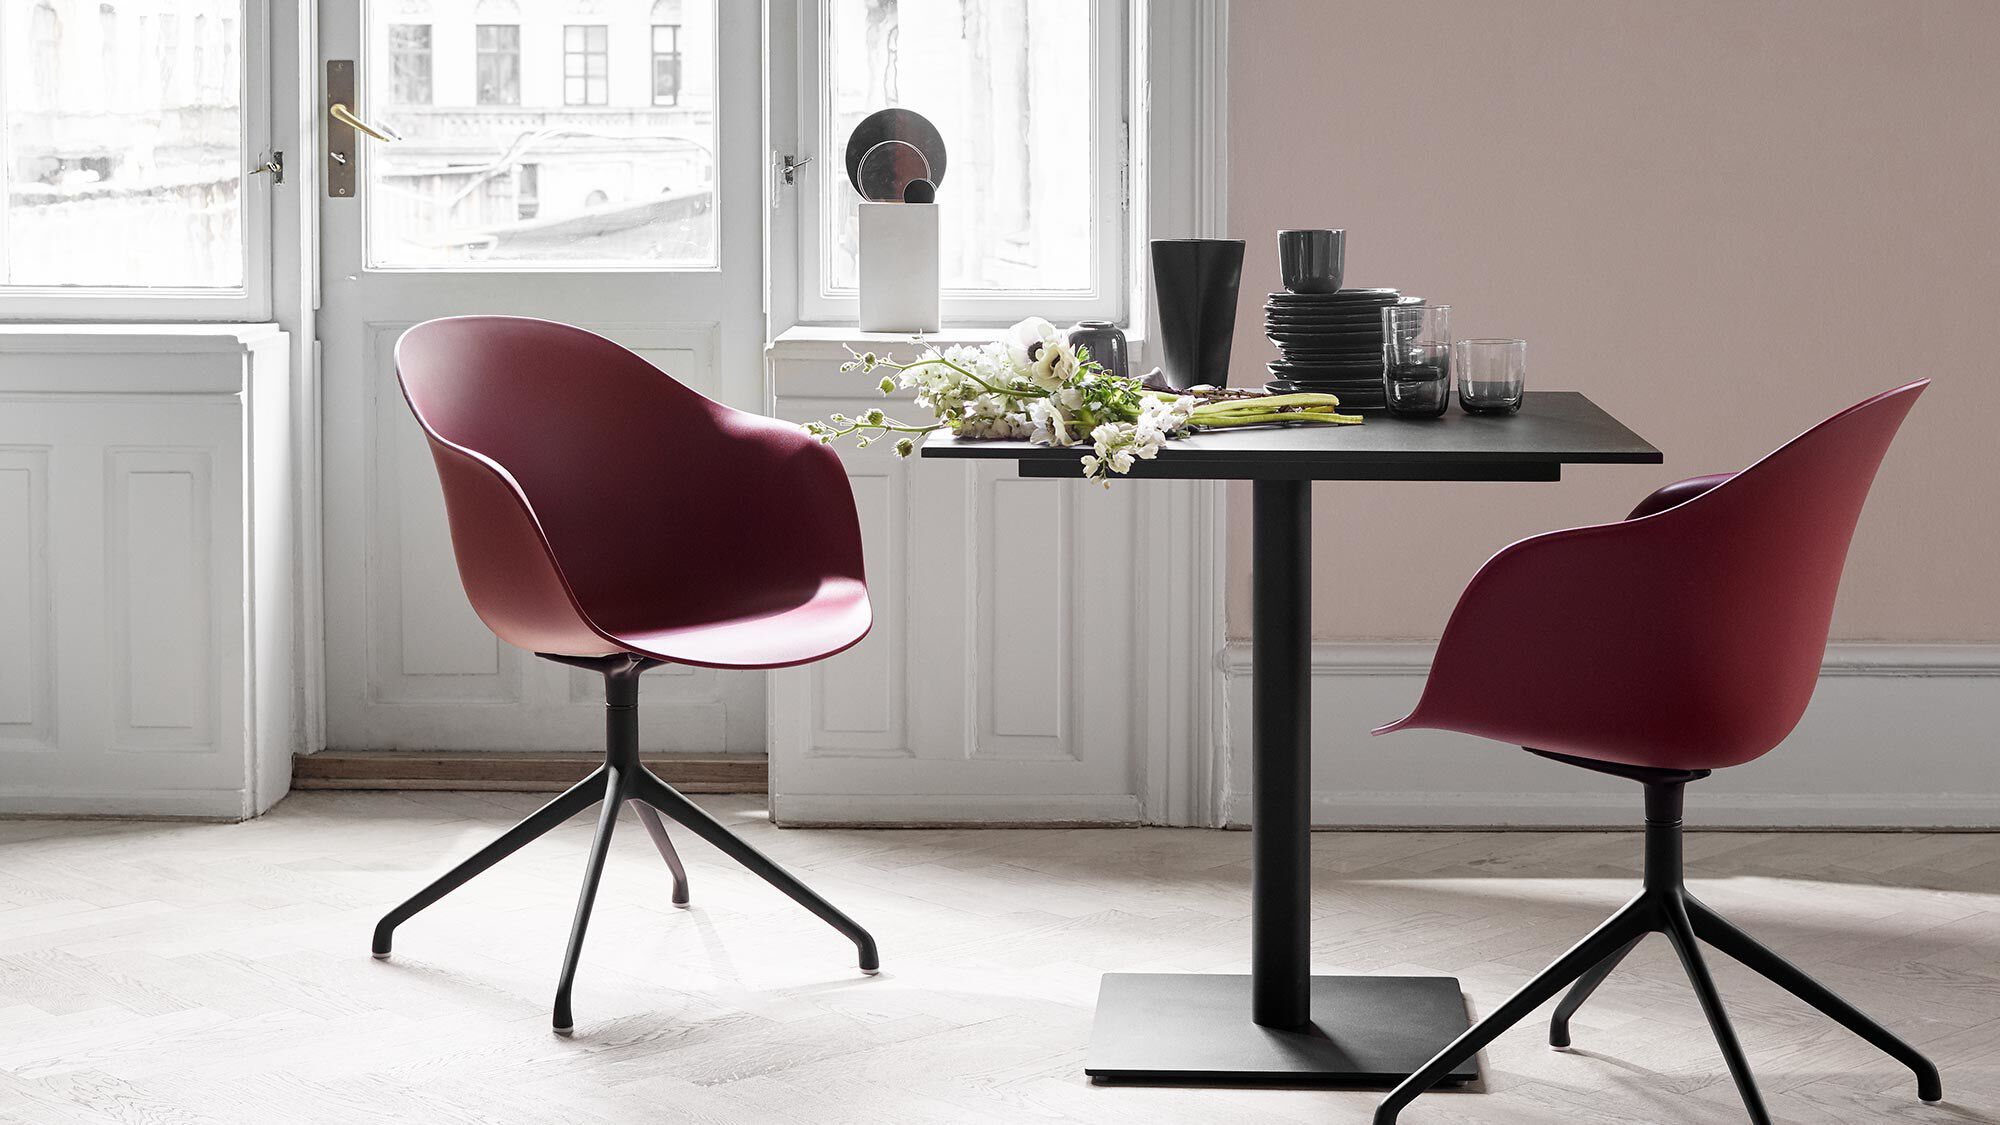 Designs by ARDE - Torino table